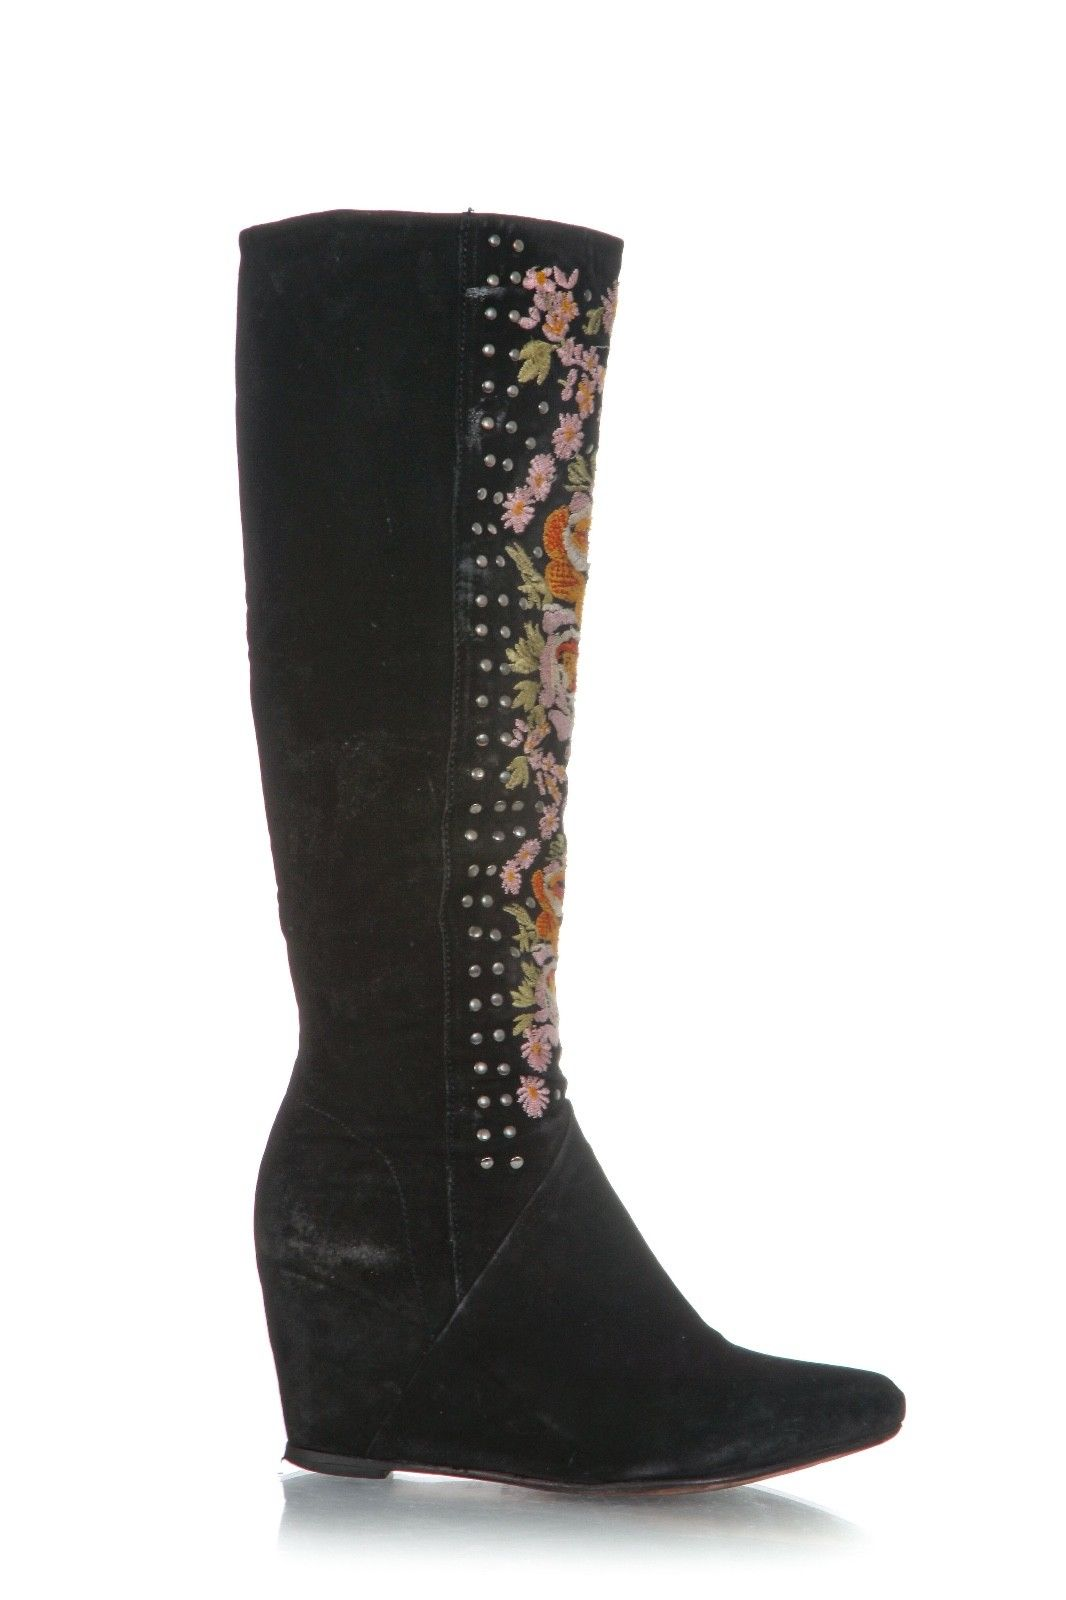 FREE PEOPLE Penny Lane Black Suede Flower Embroidered Wedge Boots Size 9